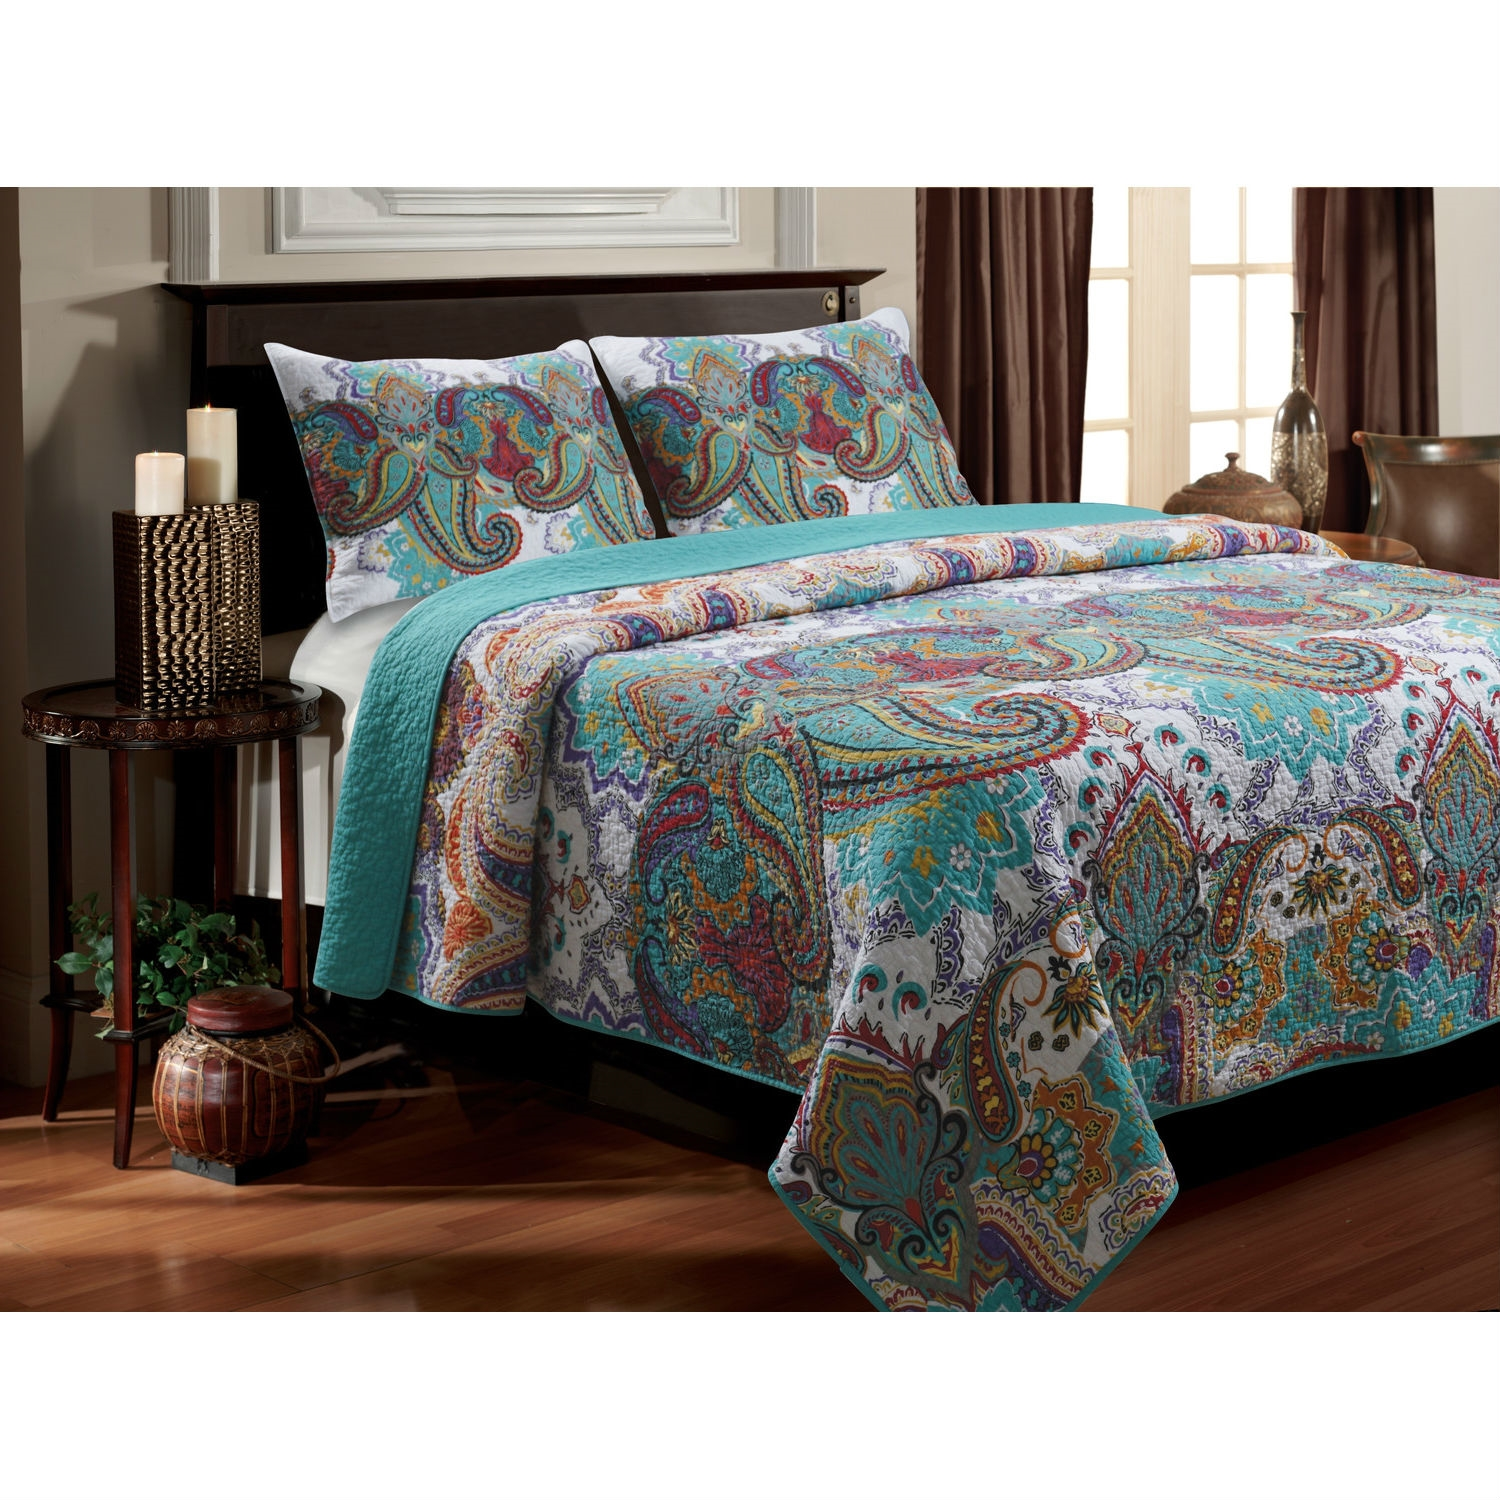 Twin size 3-Piece Cotton Quilt Set in Teal Multi-Color Paisley ... : cotton quilt twin - Adamdwight.com